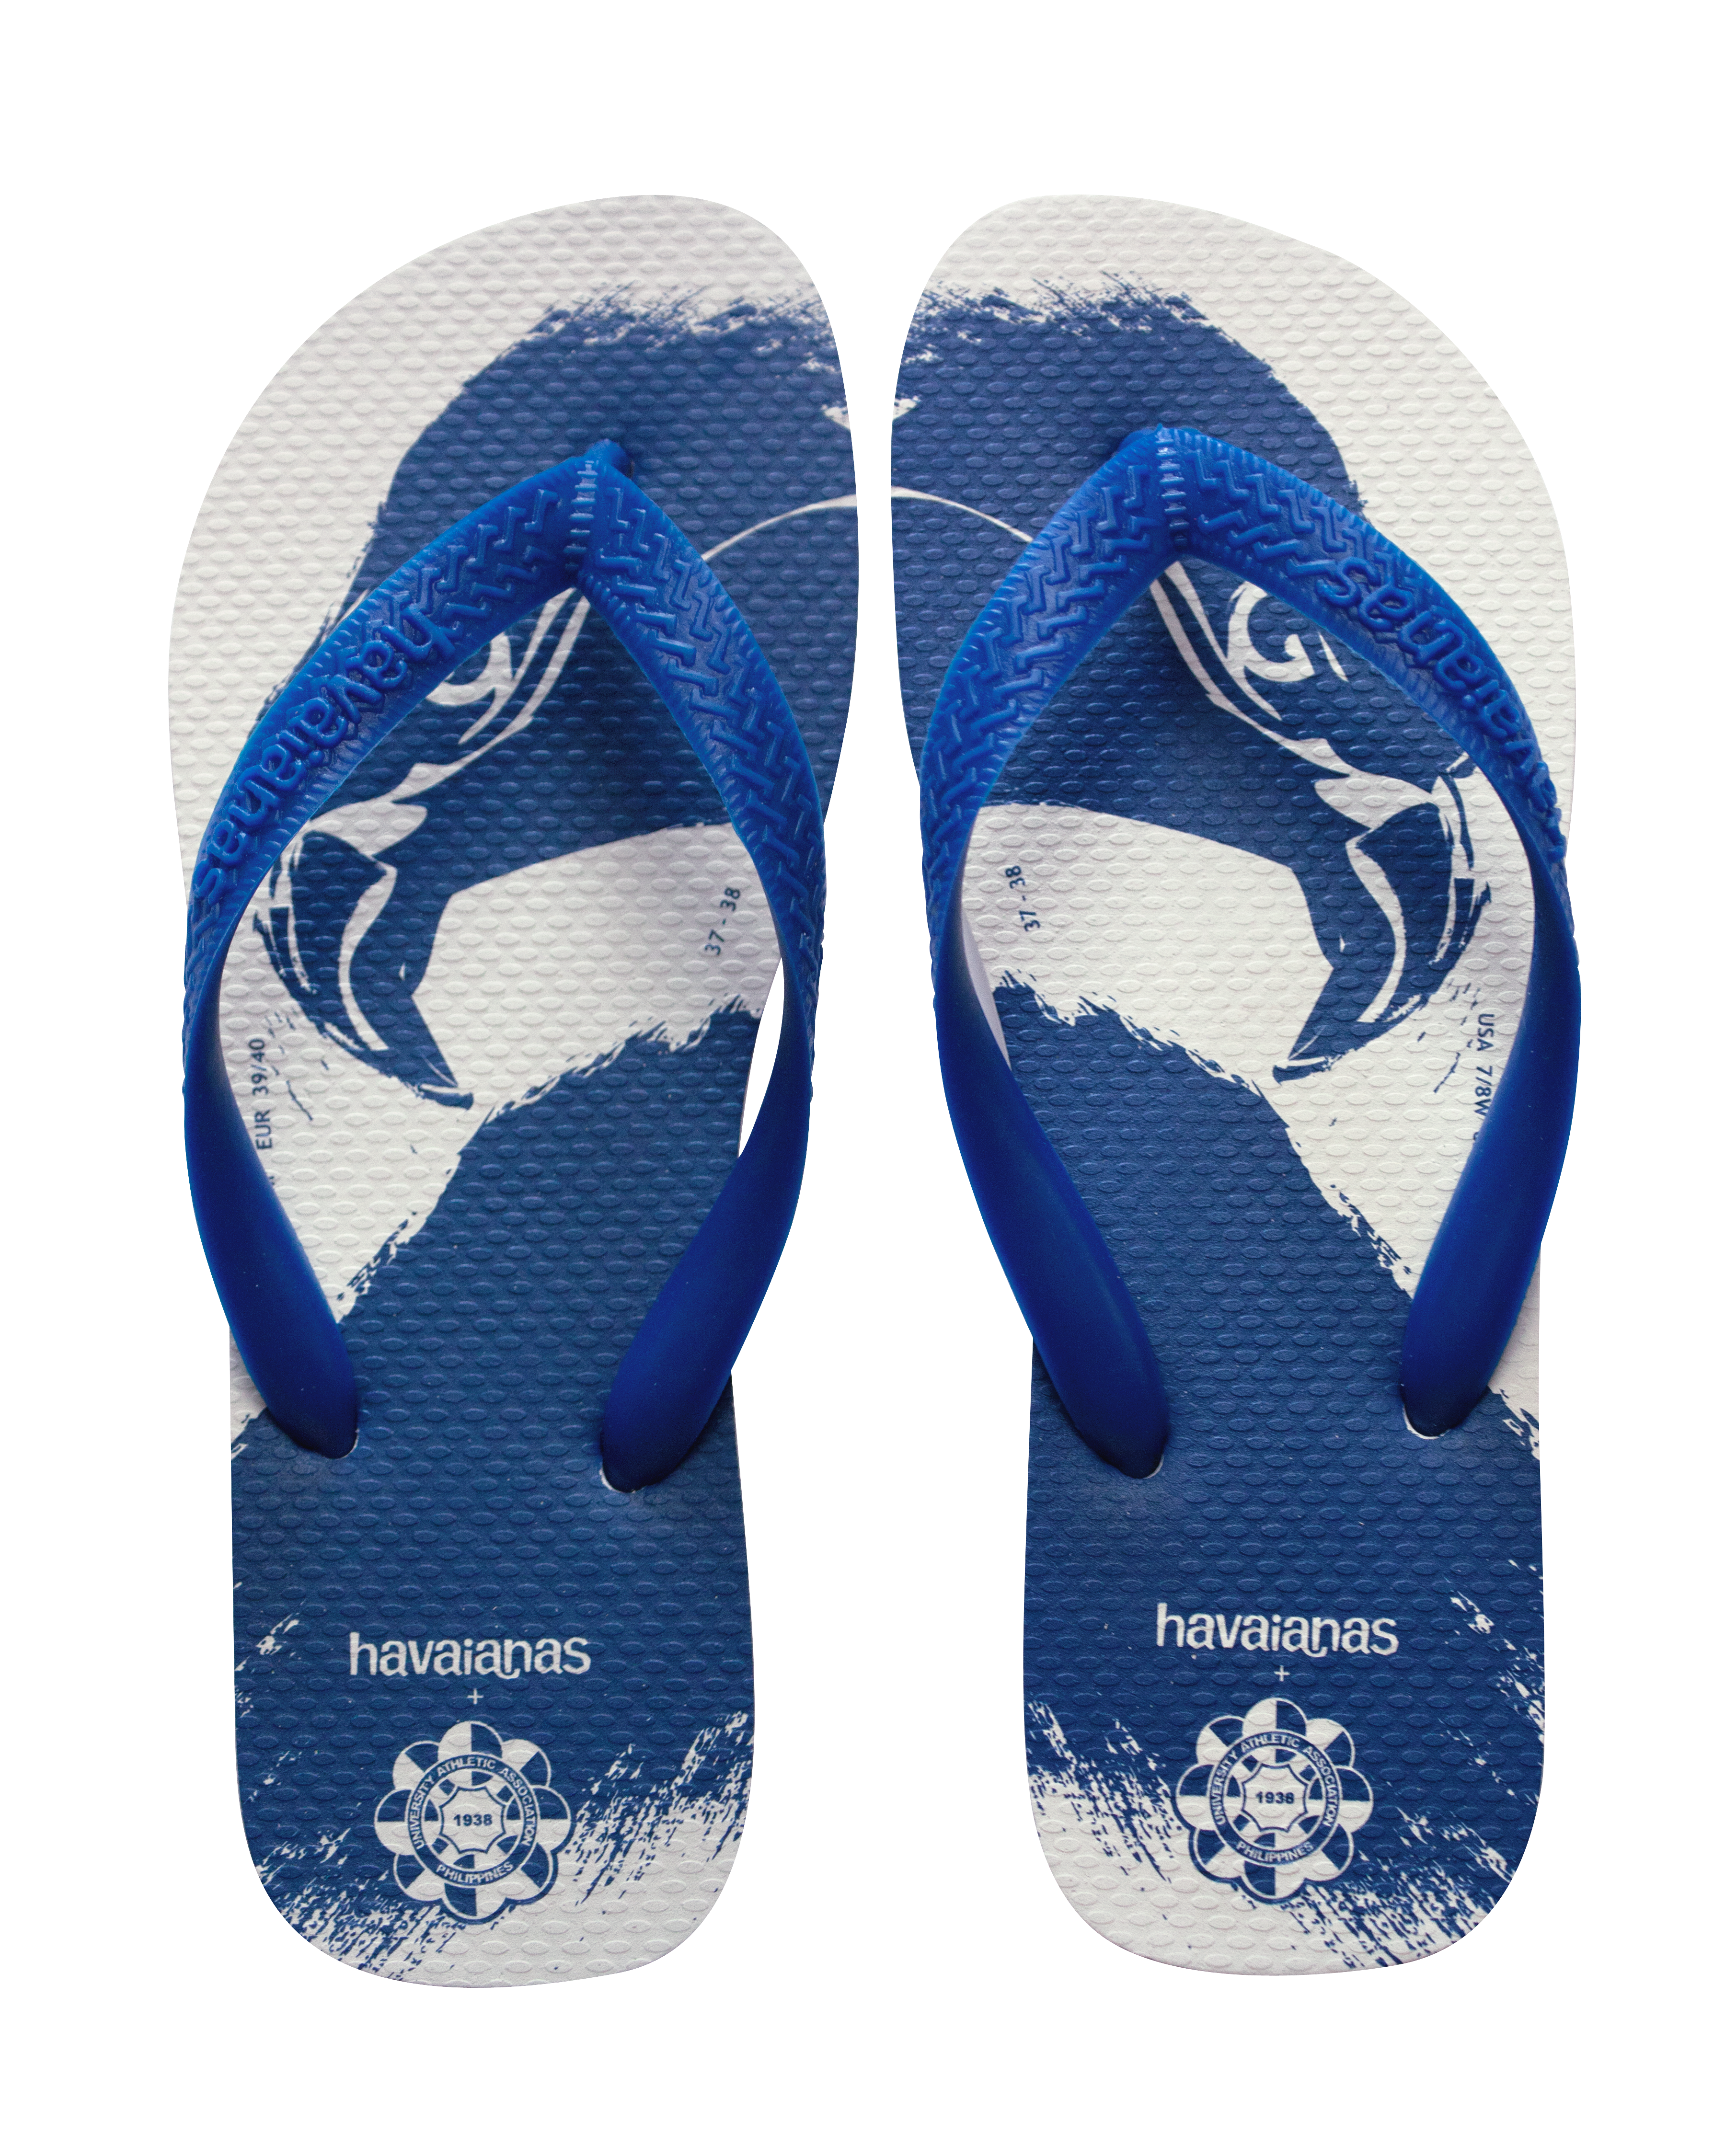 ADMU UAAP Havaianas at the Havaianas + UAAP Pop Up Shop